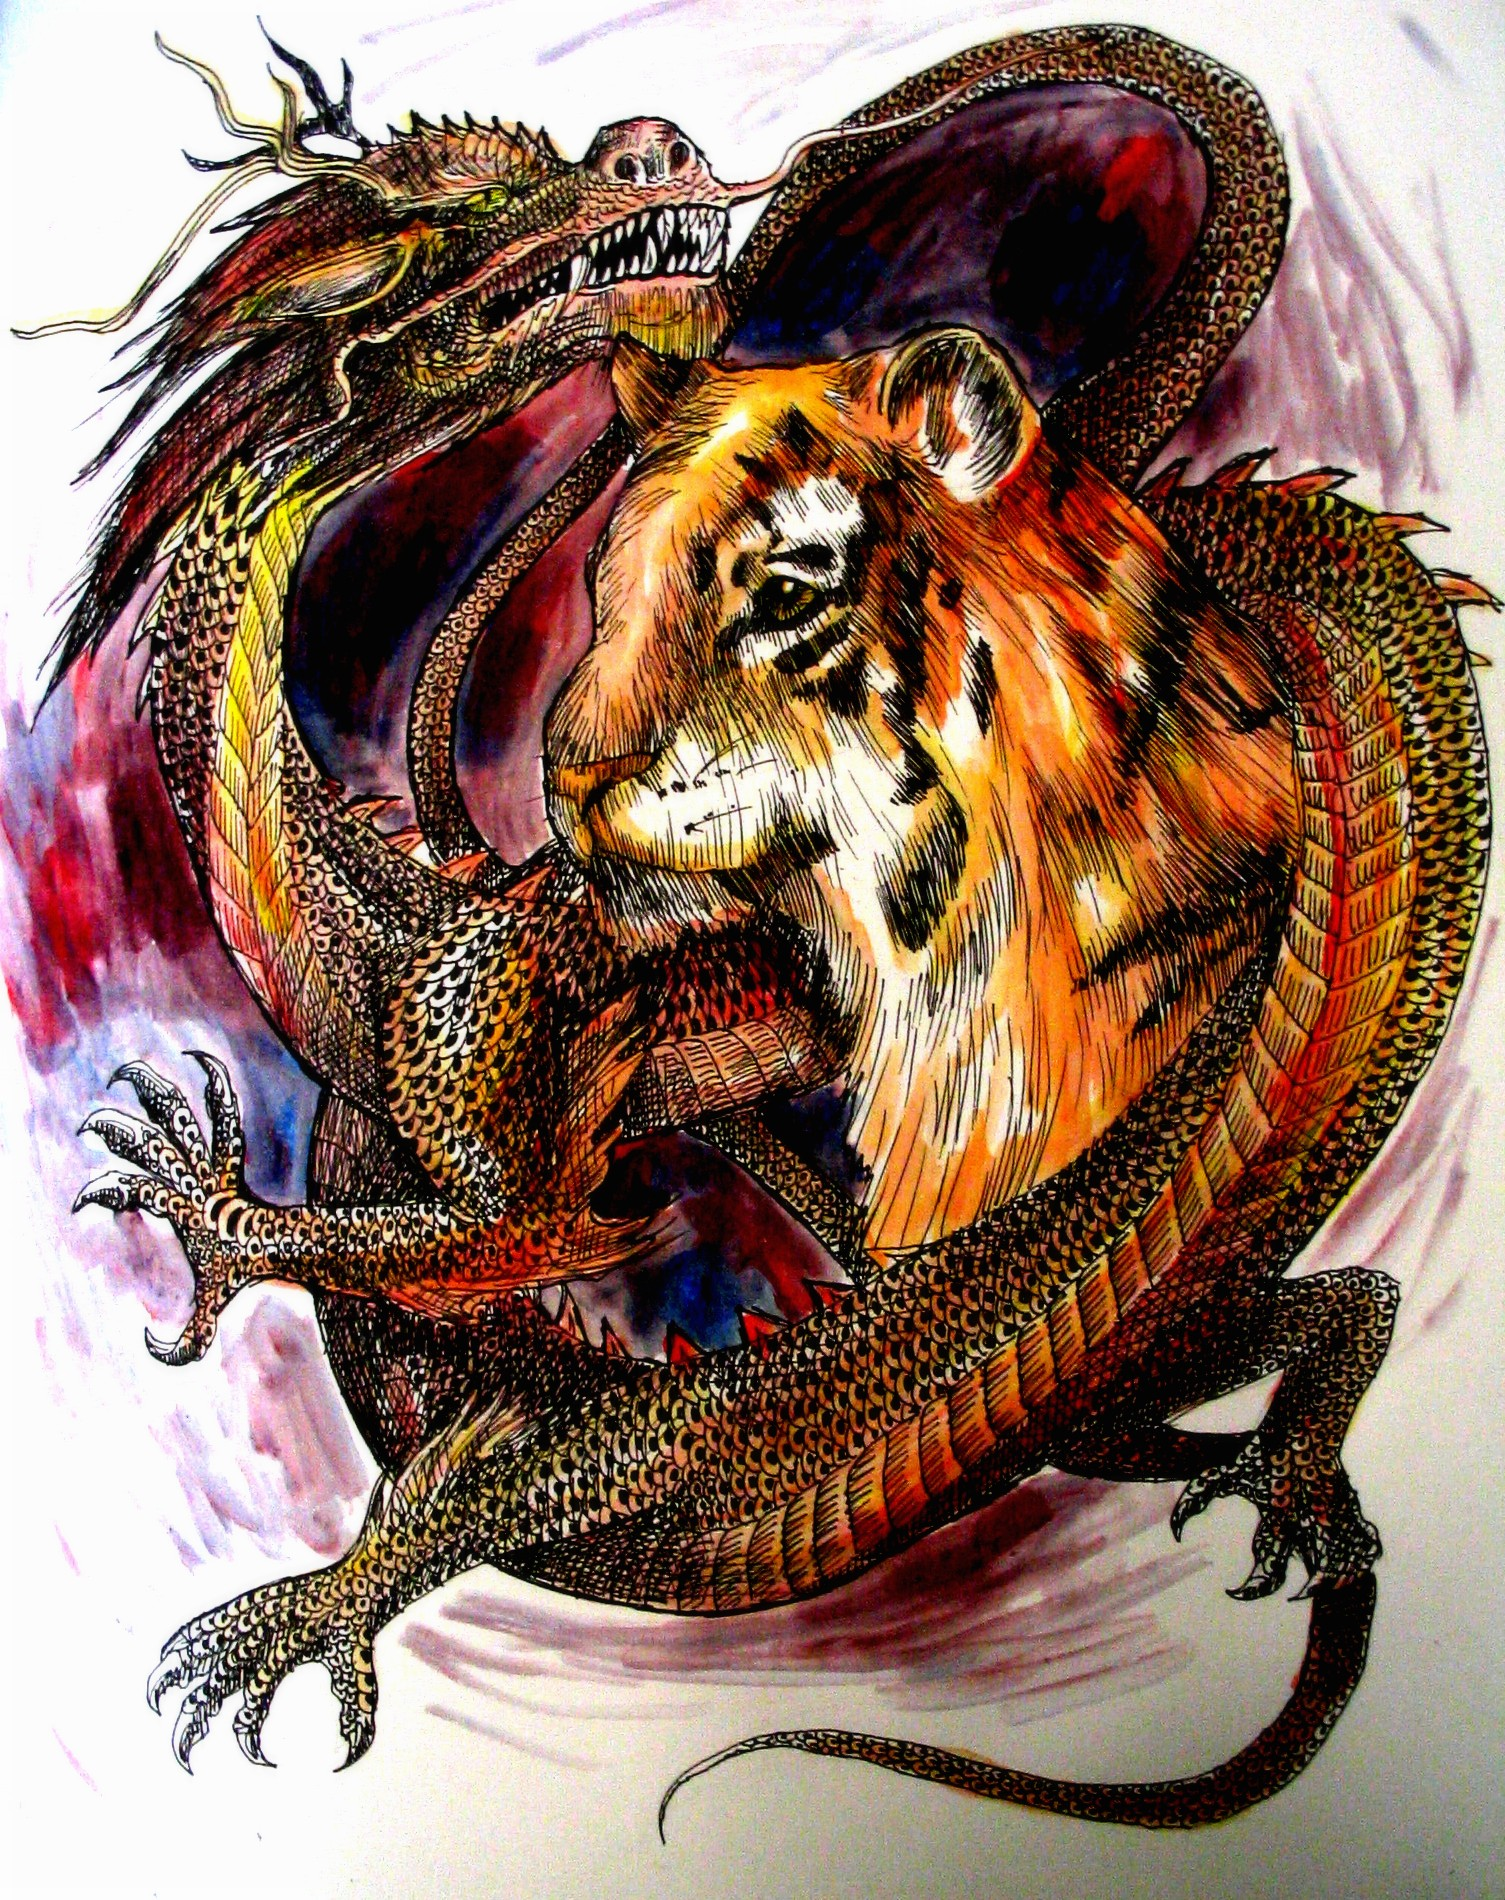 Dragon and Tiger Wallpaper - WallpaperSafari